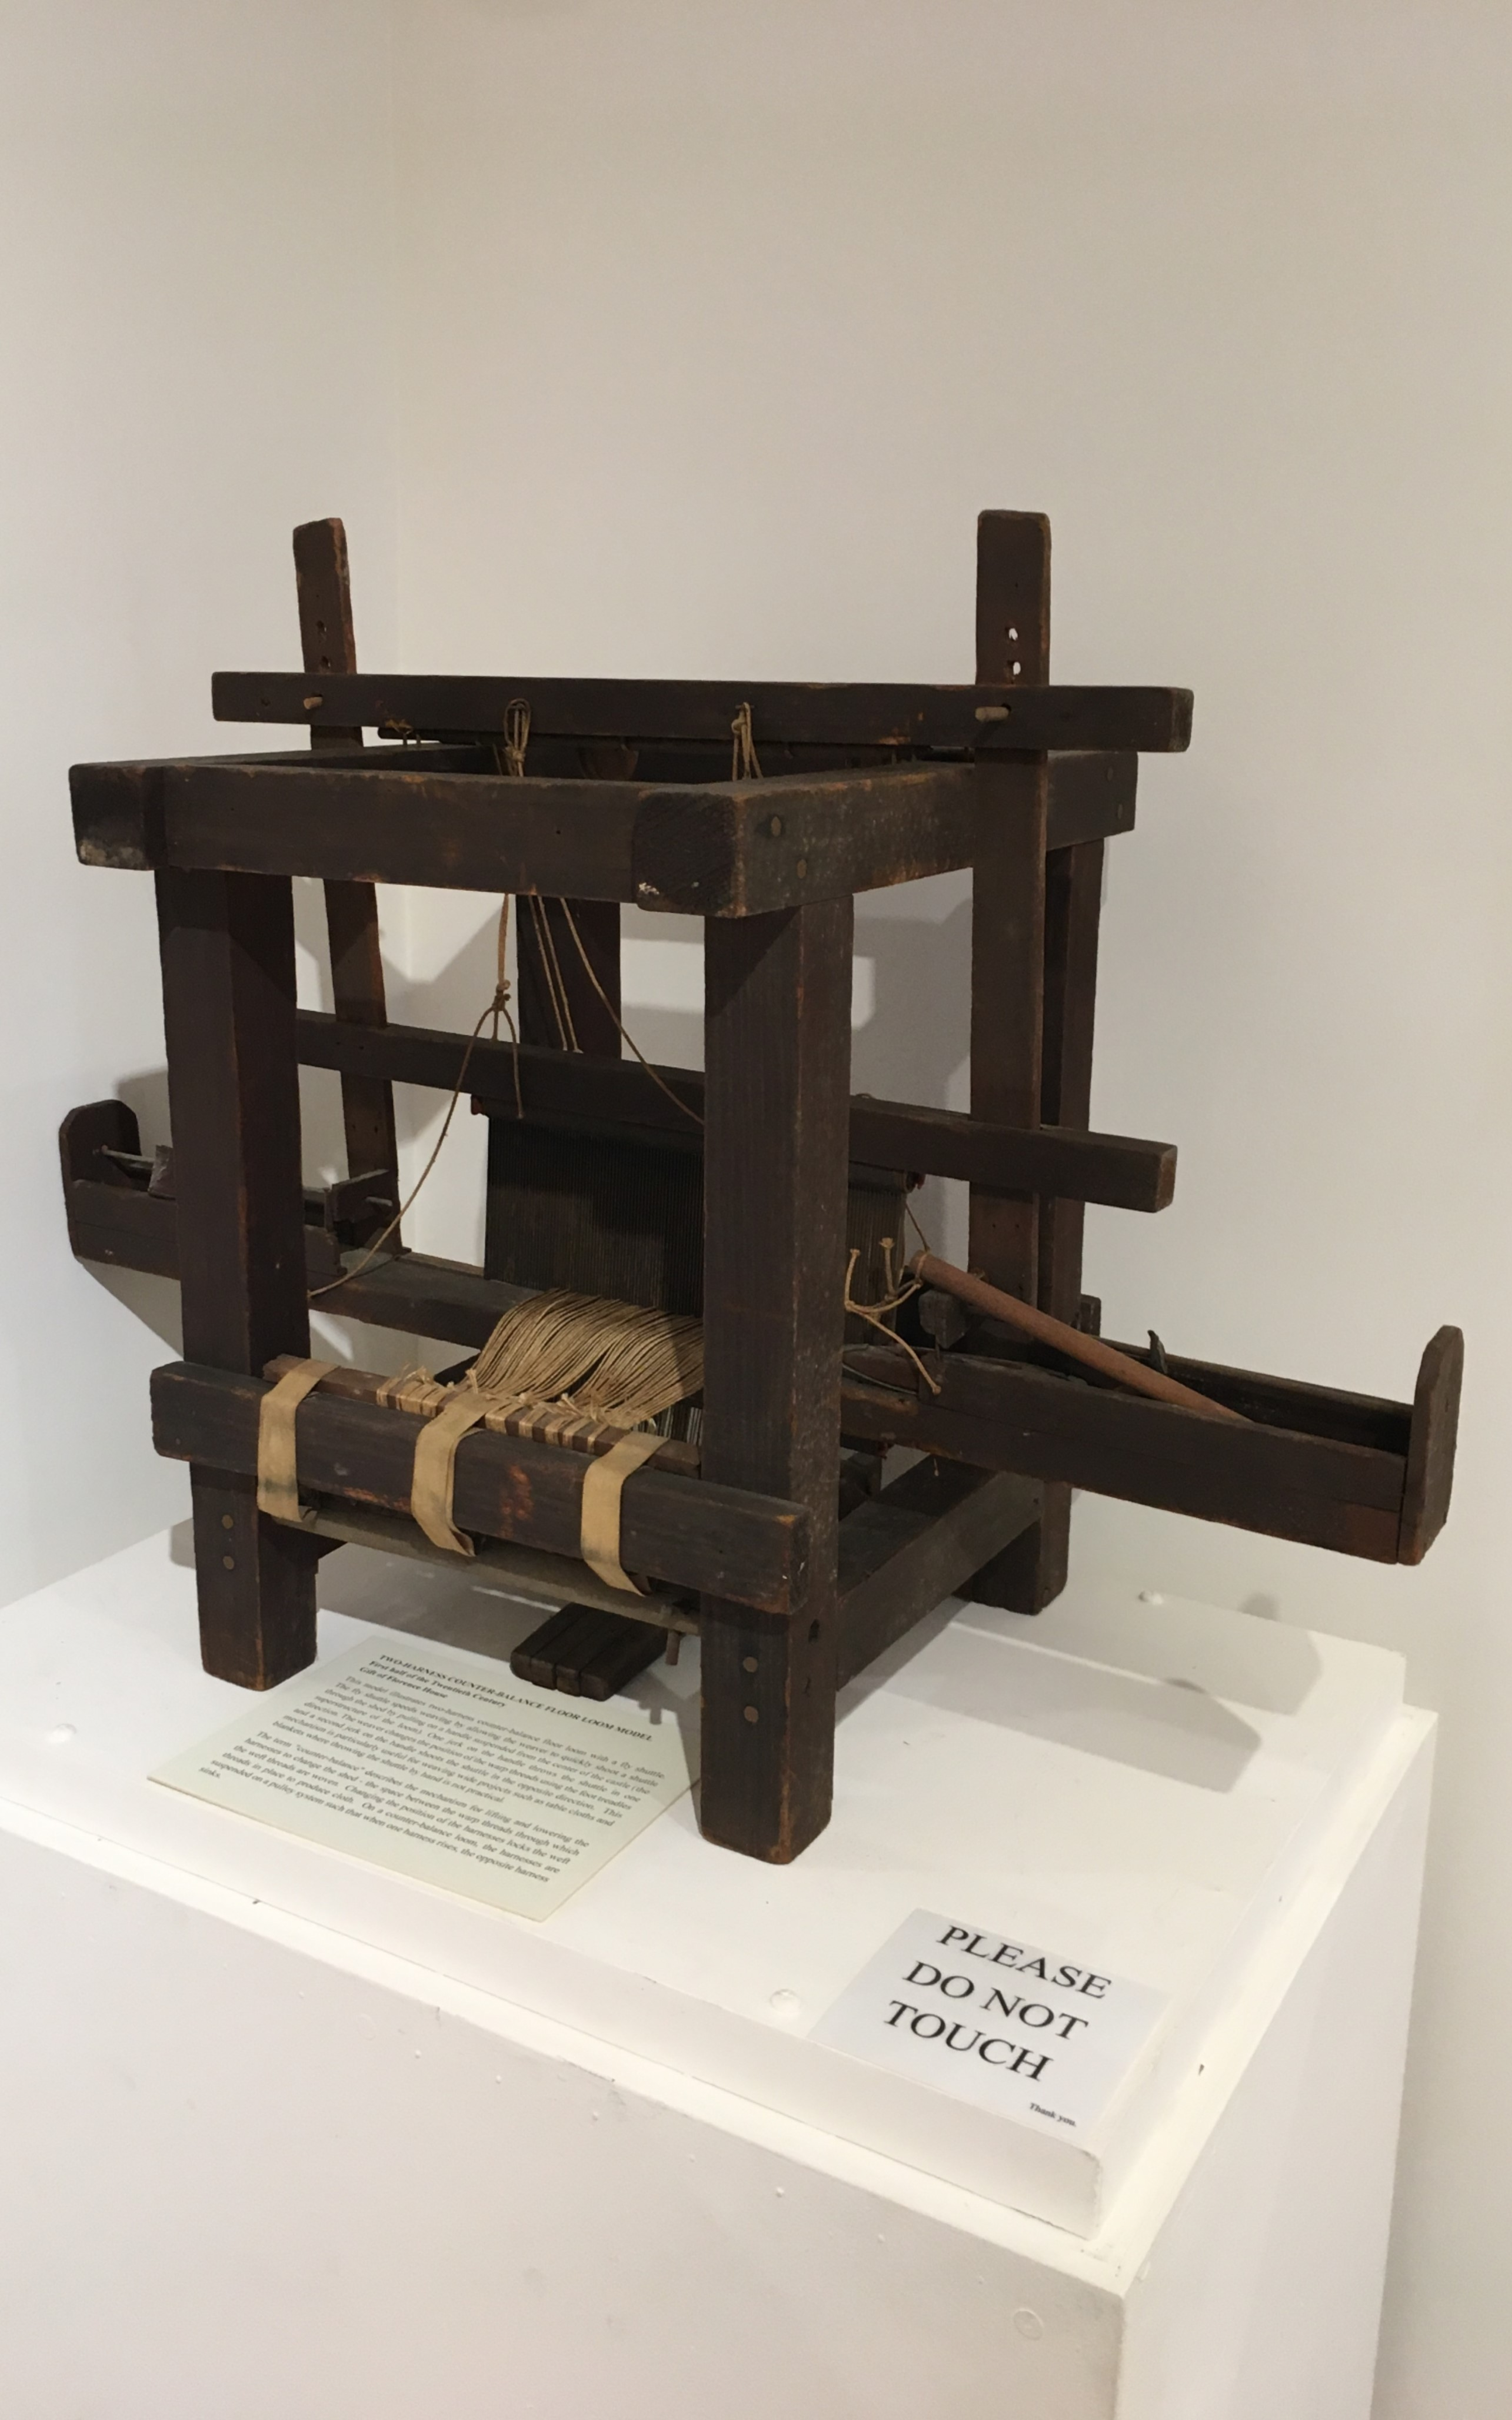 <h3>Two-Harness Counter-Balance Floor Loom Model</h3>